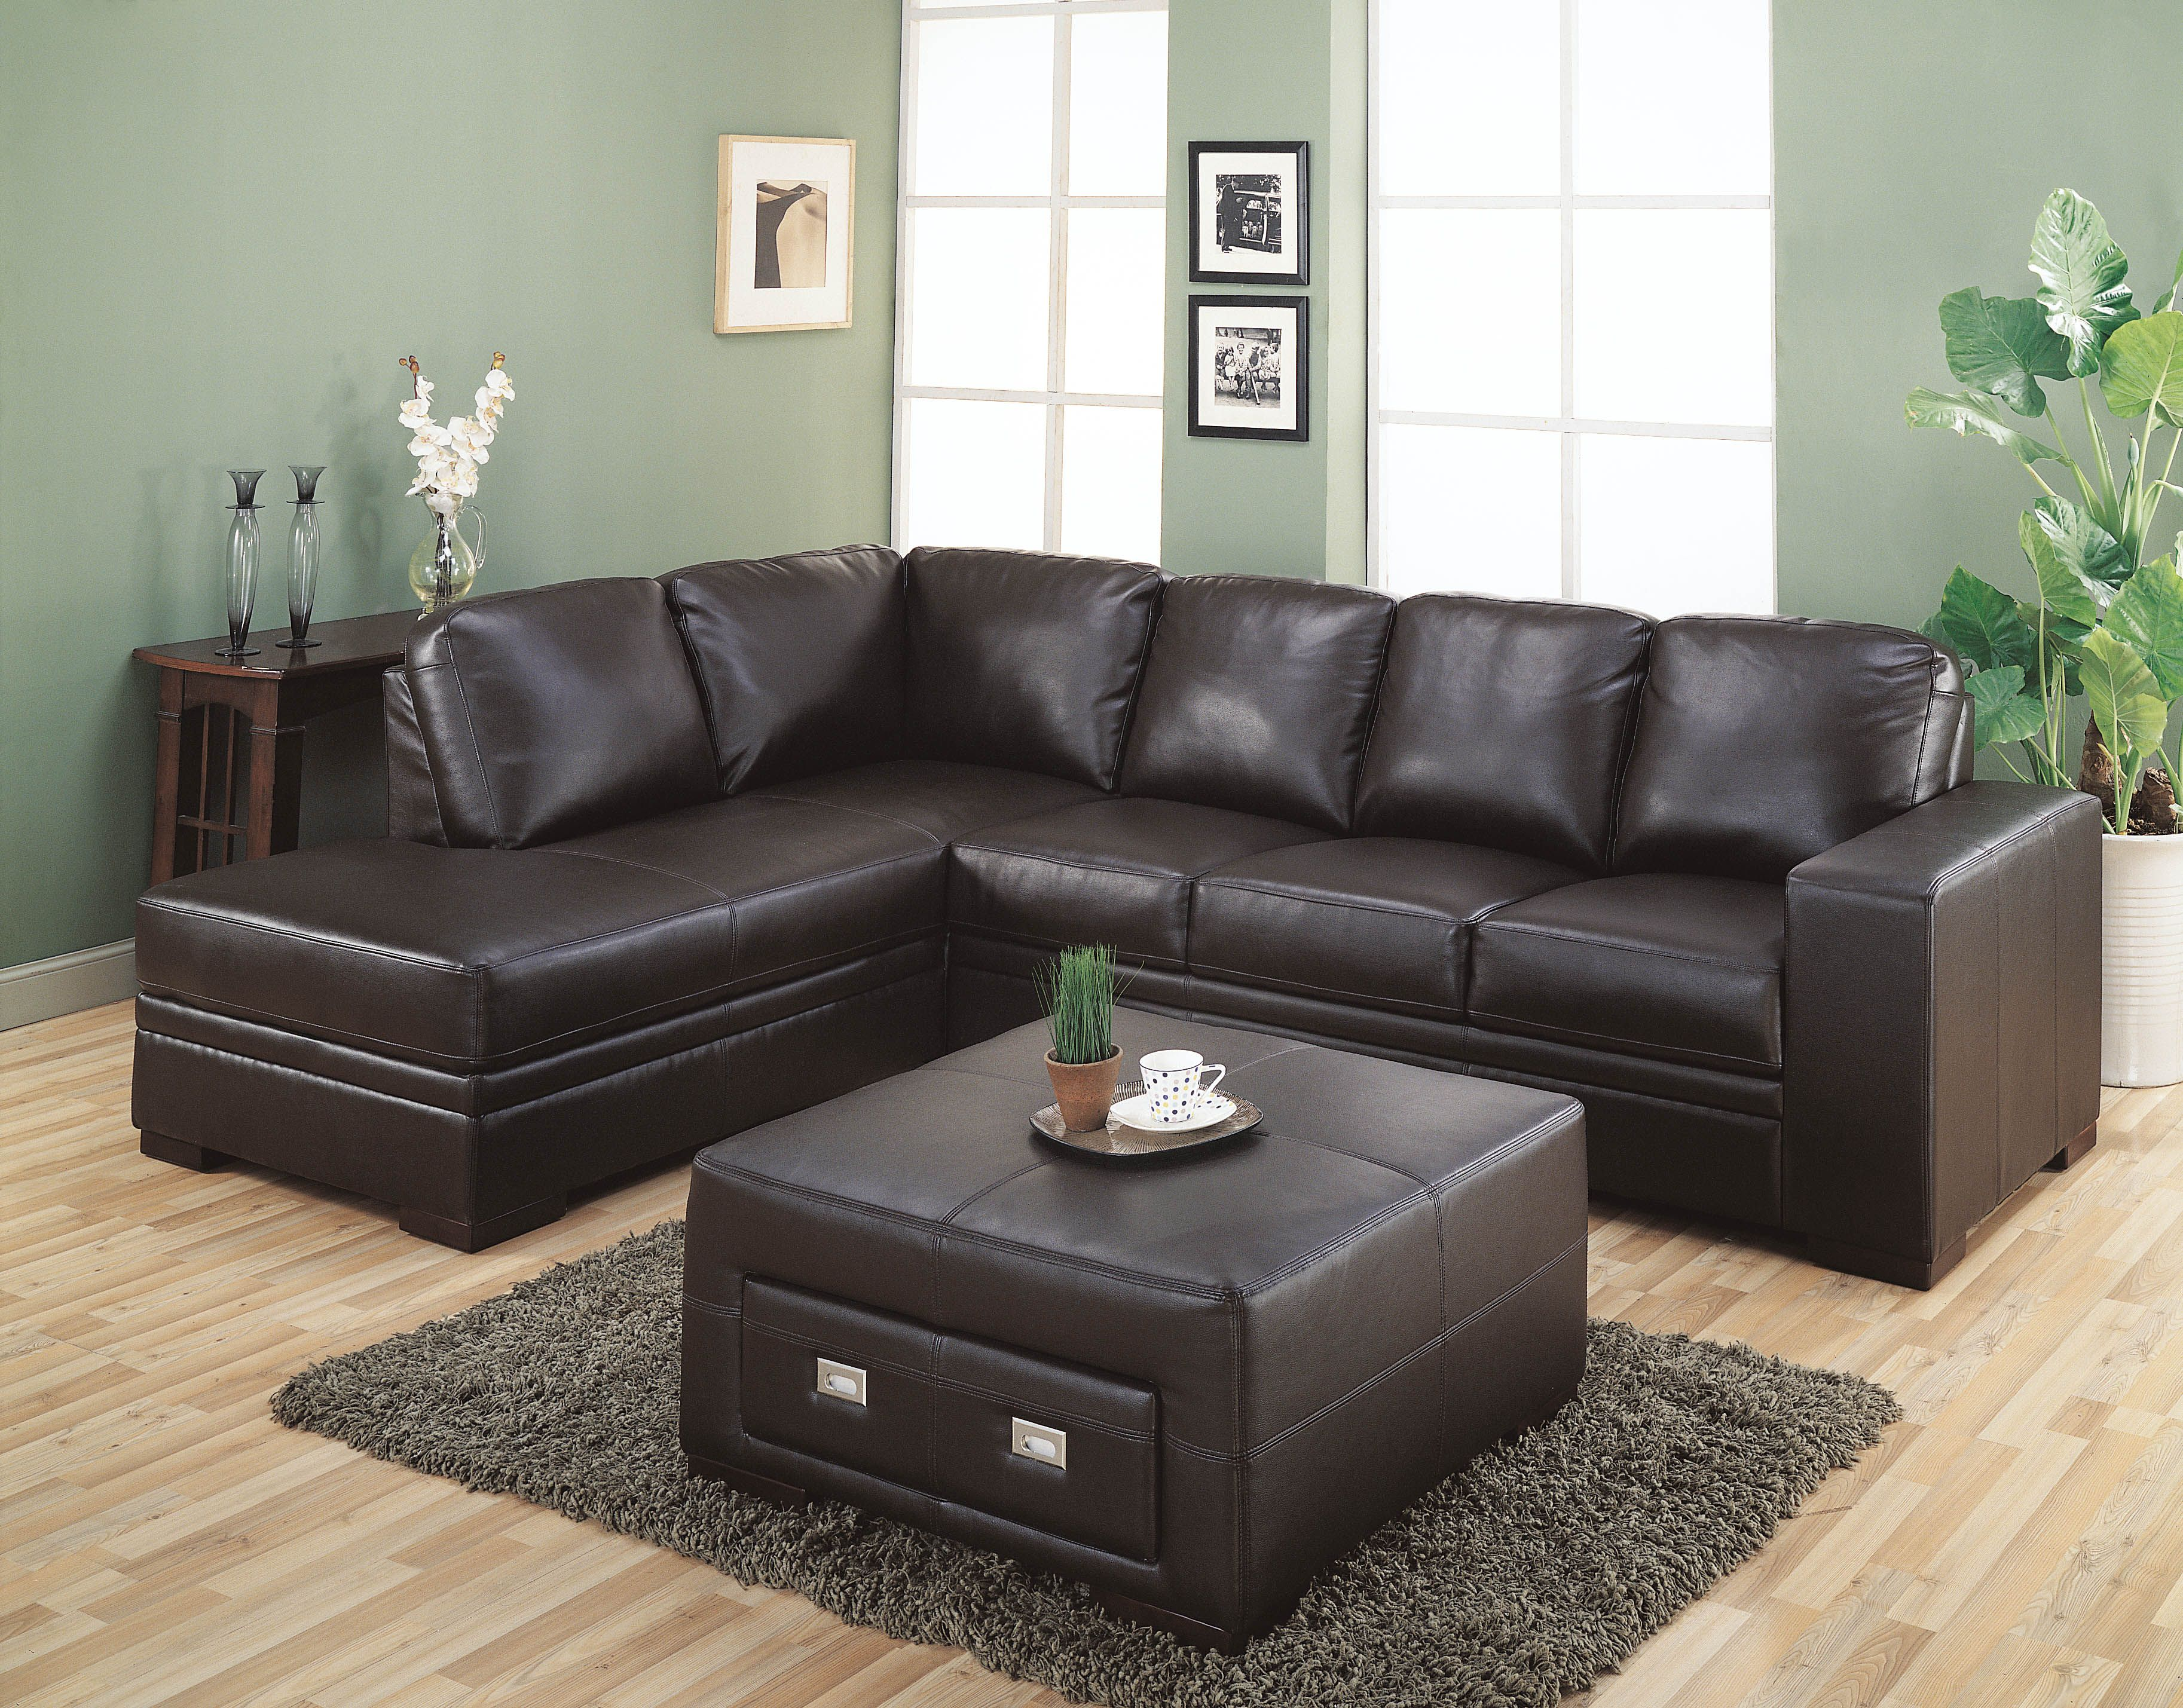 brown leather sofa on grey carpet wooden set in living room photos very popular sectional dark couch with